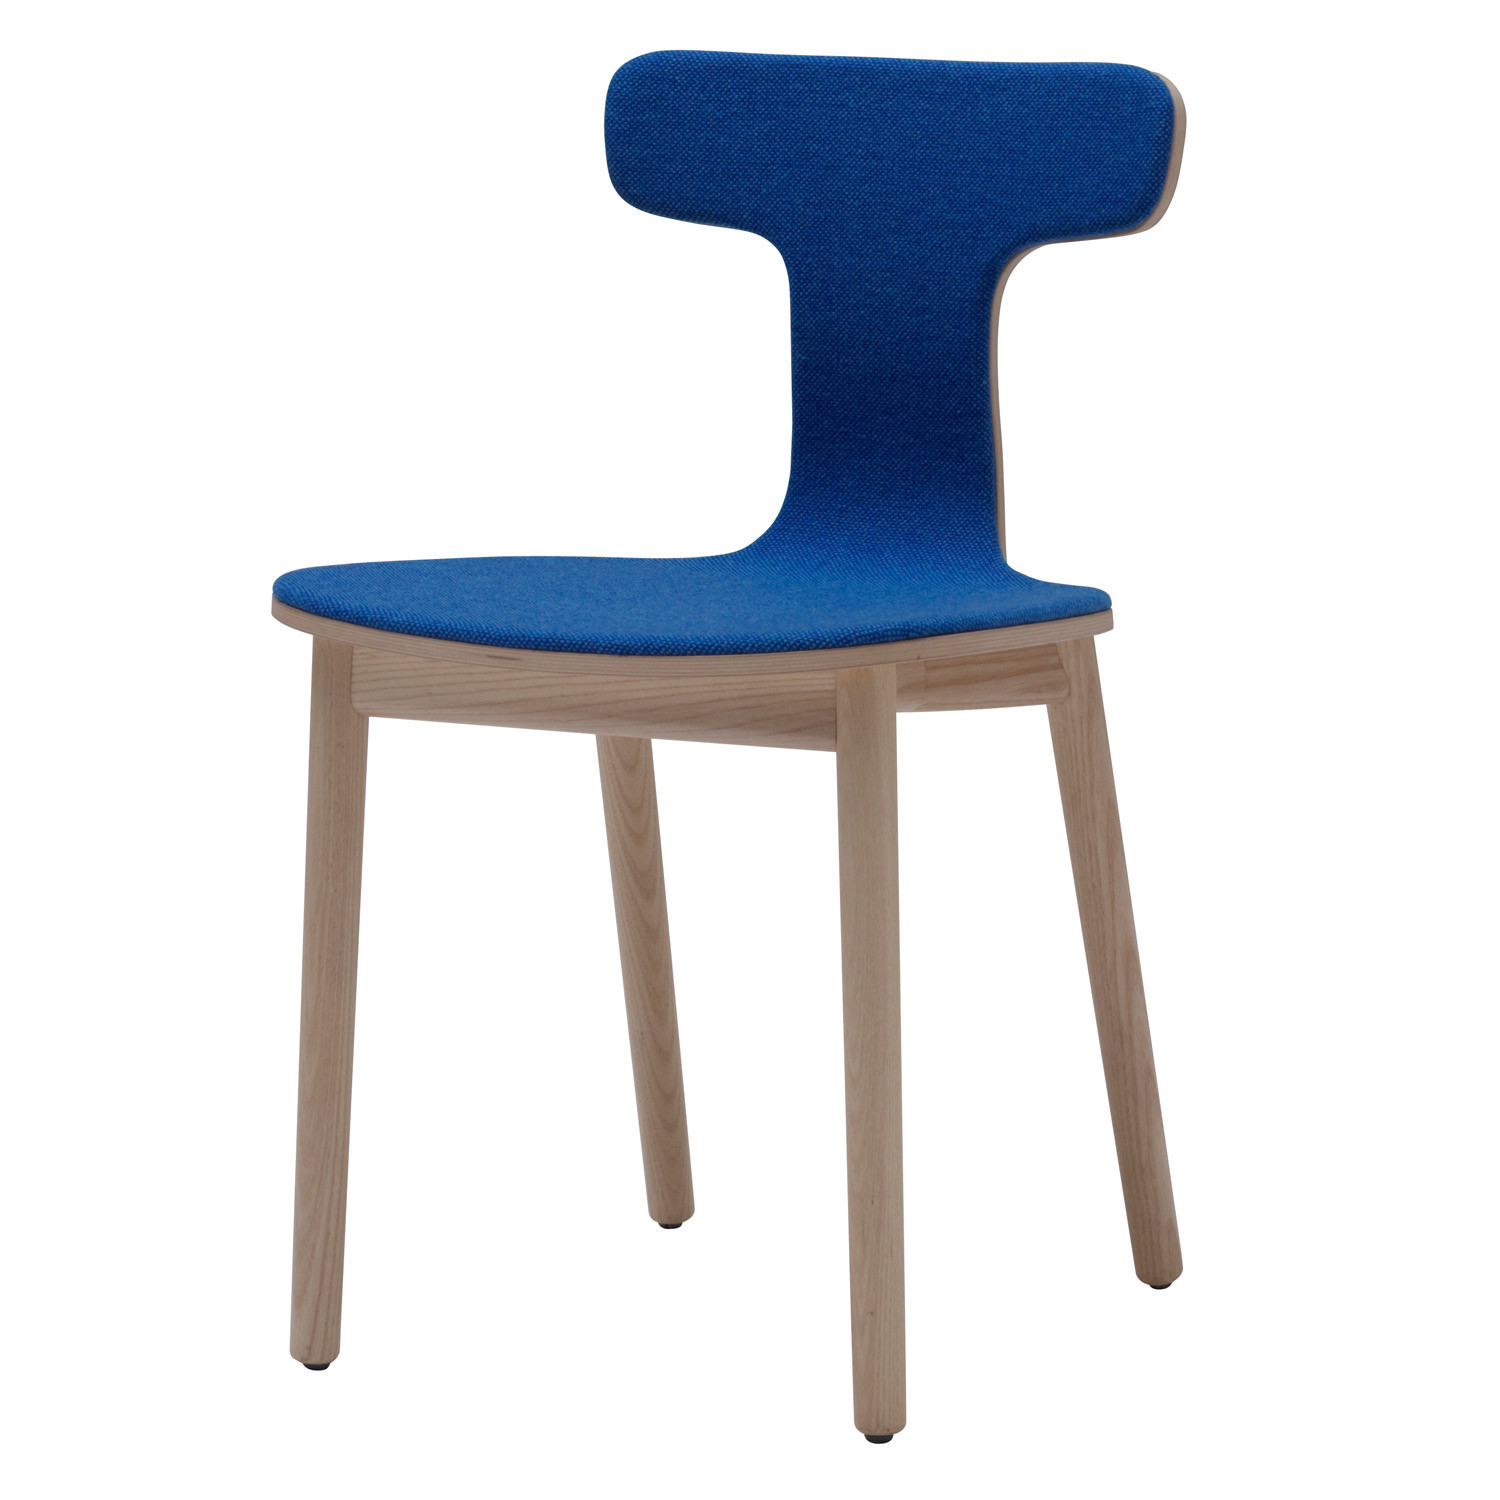 Bac One Chair by Cappellini